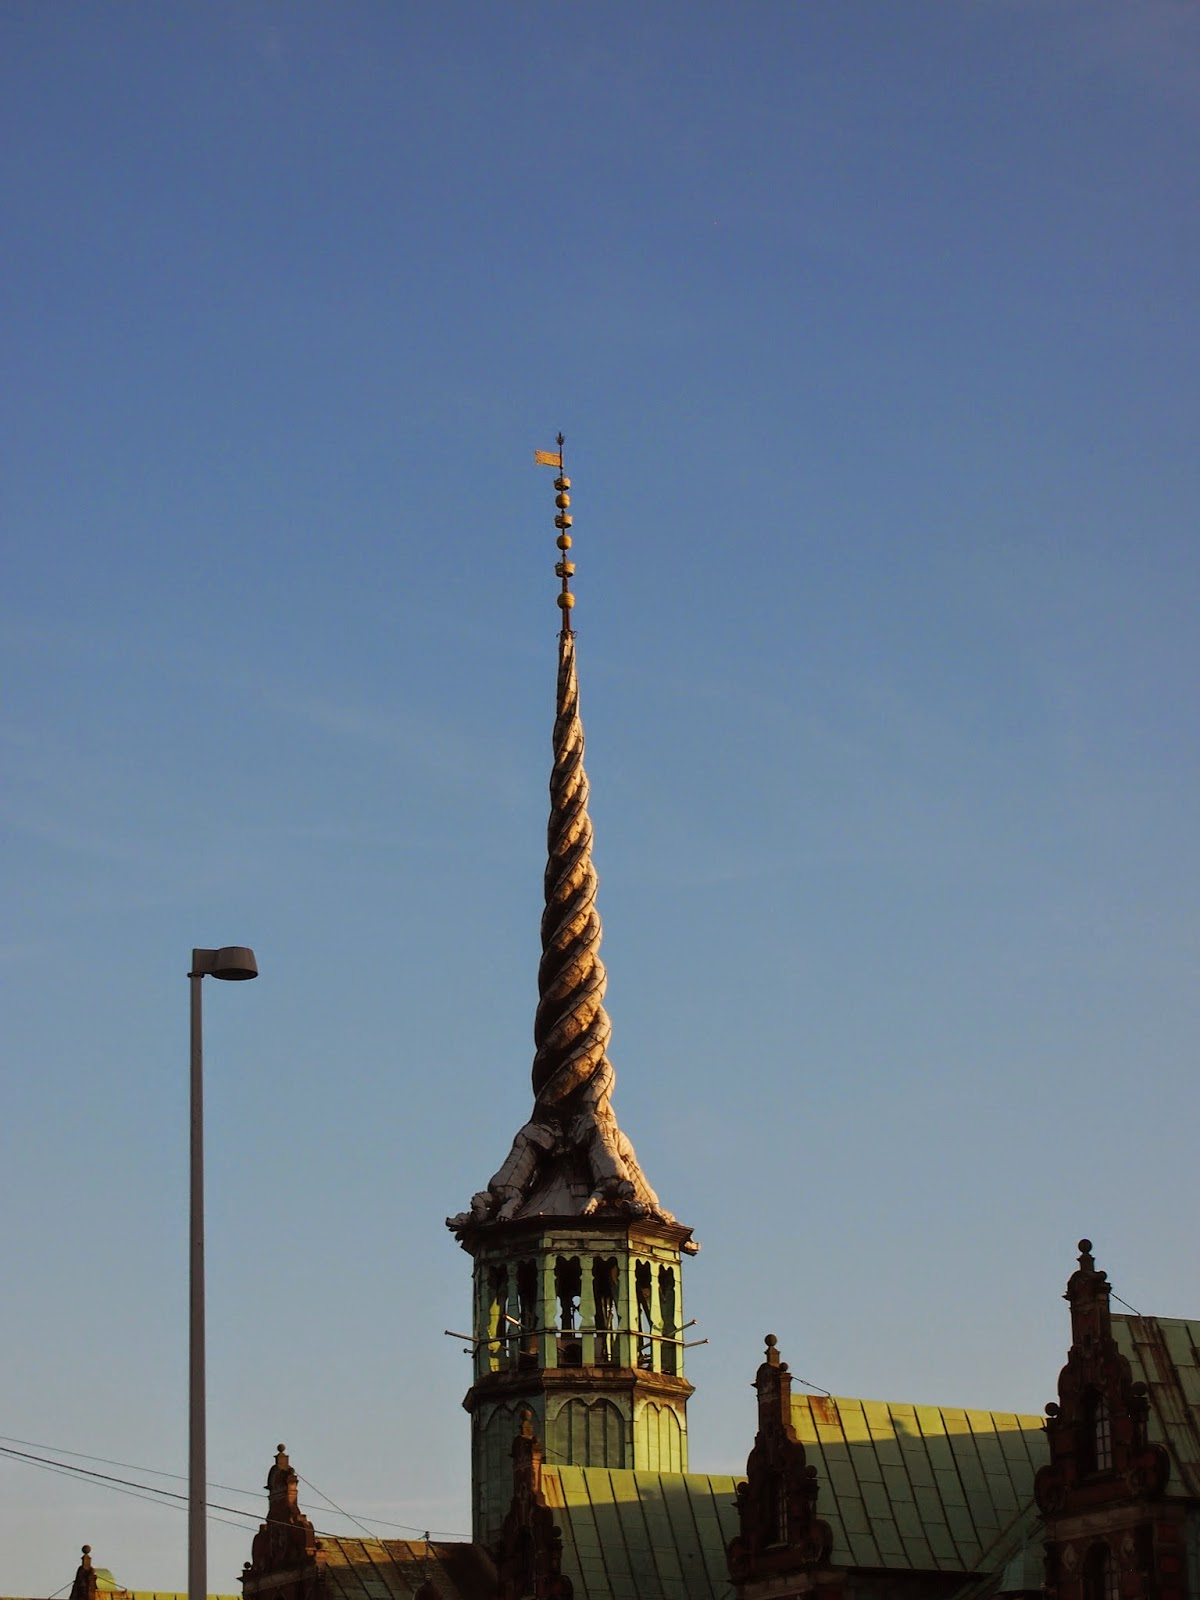 The Old Stock Exchange Building with a focus on the Dragon Spire